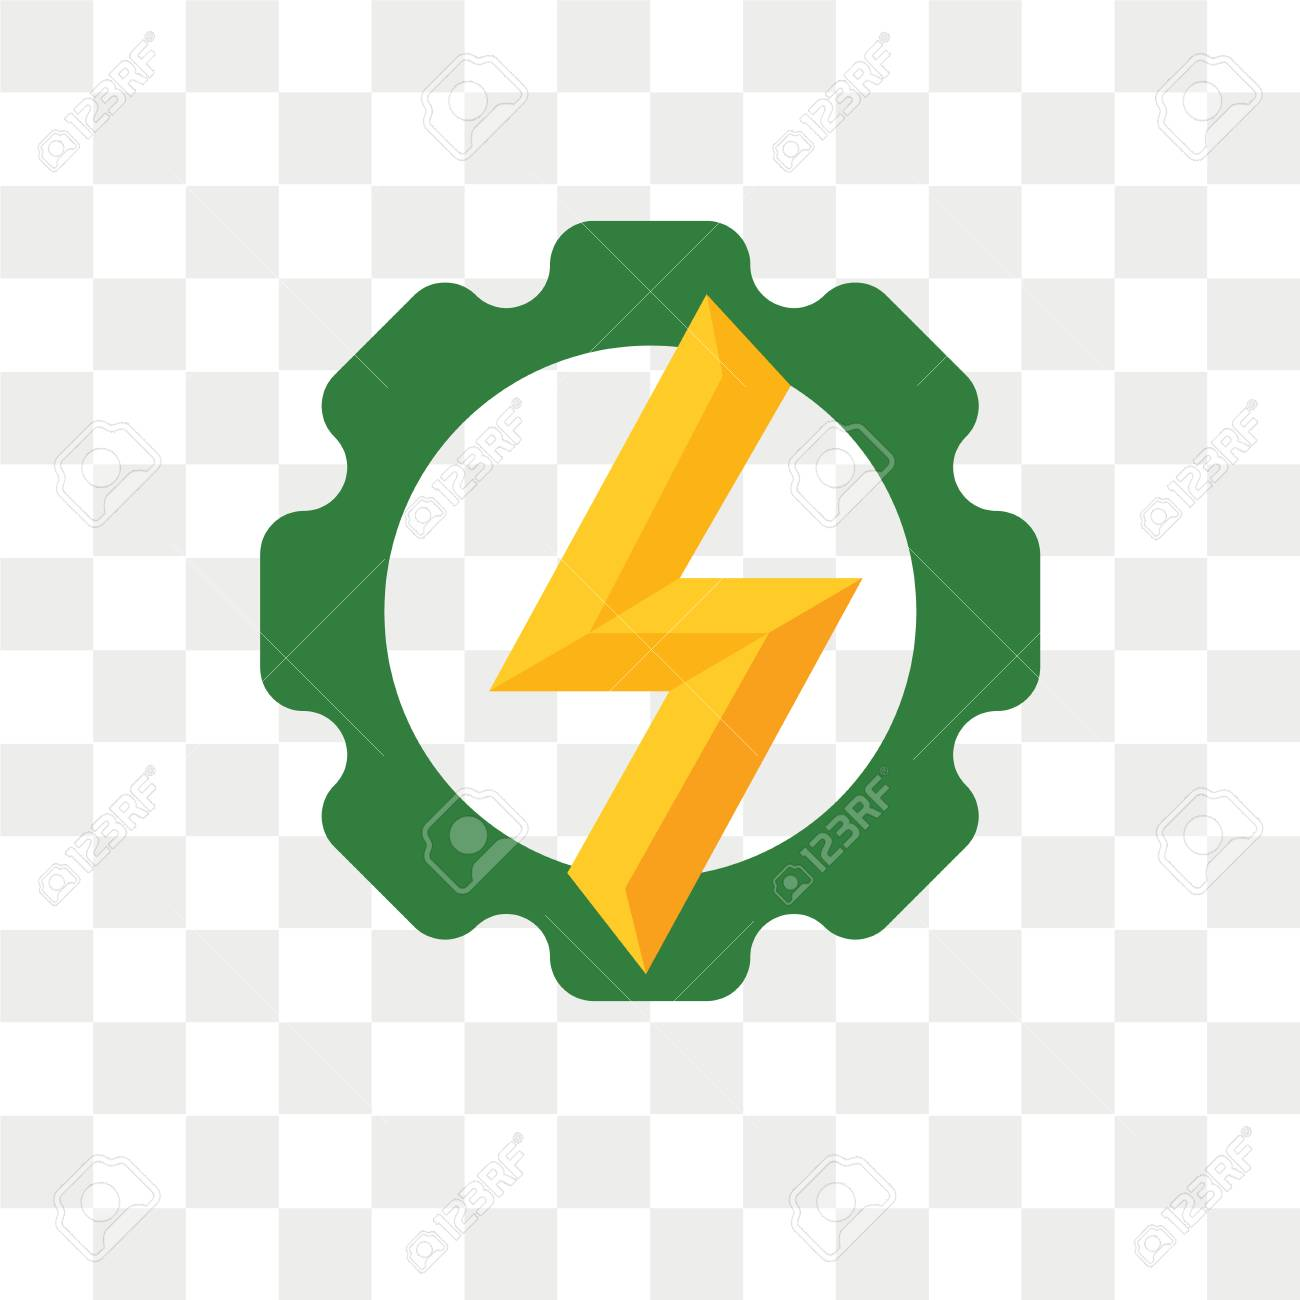 energy vector icon isolated on transparent background energy royalty free cliparts vectors and stock illustration image 108633952 energy vector icon isolated on transparent background energy